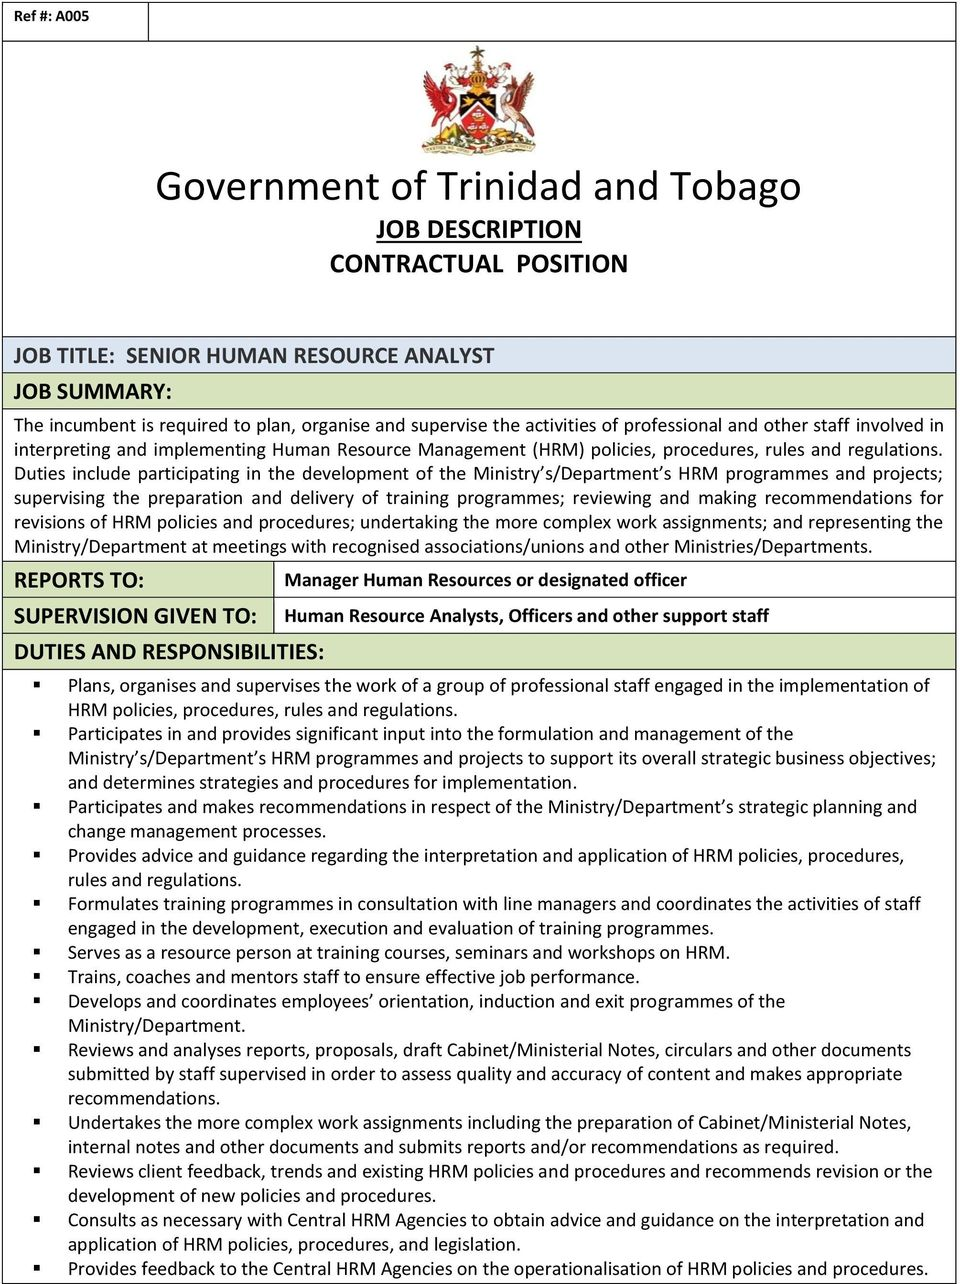 Duties include participating in the development of the Ministry s/department s HRM programmes and projects; supervising the preparation and delivery of training programmes; reviewing and making